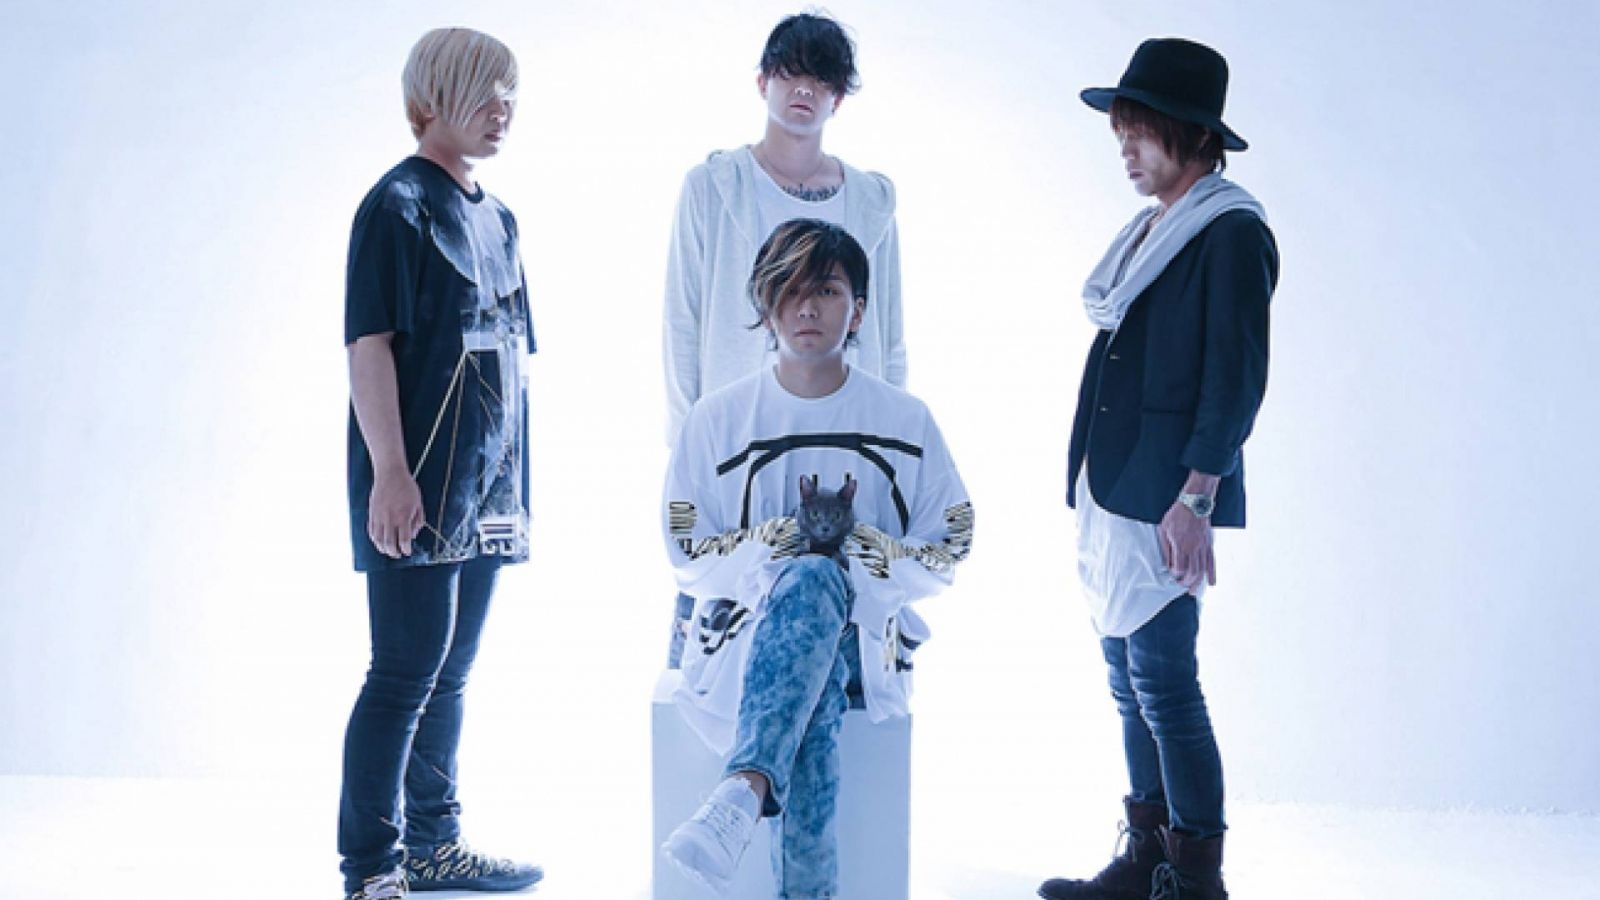 New Single from SILHOUETTE FROM THE SKYLIT © SILHOUETTE FROM THE SKYLIT